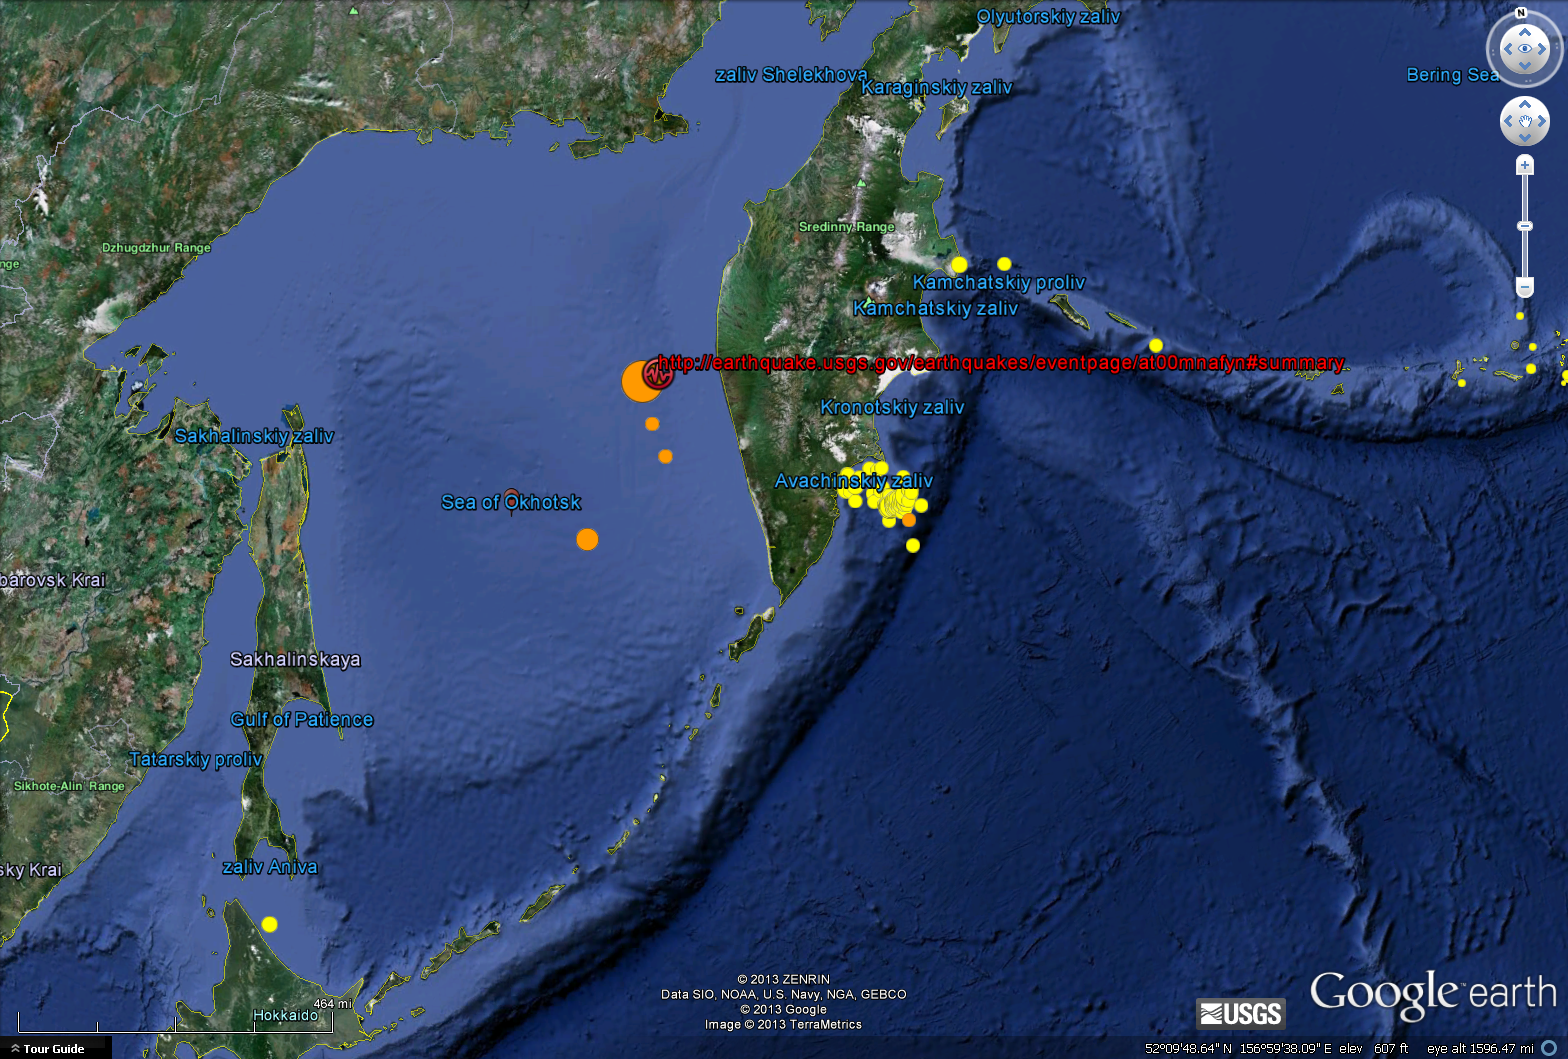 M8.3 earthquake map